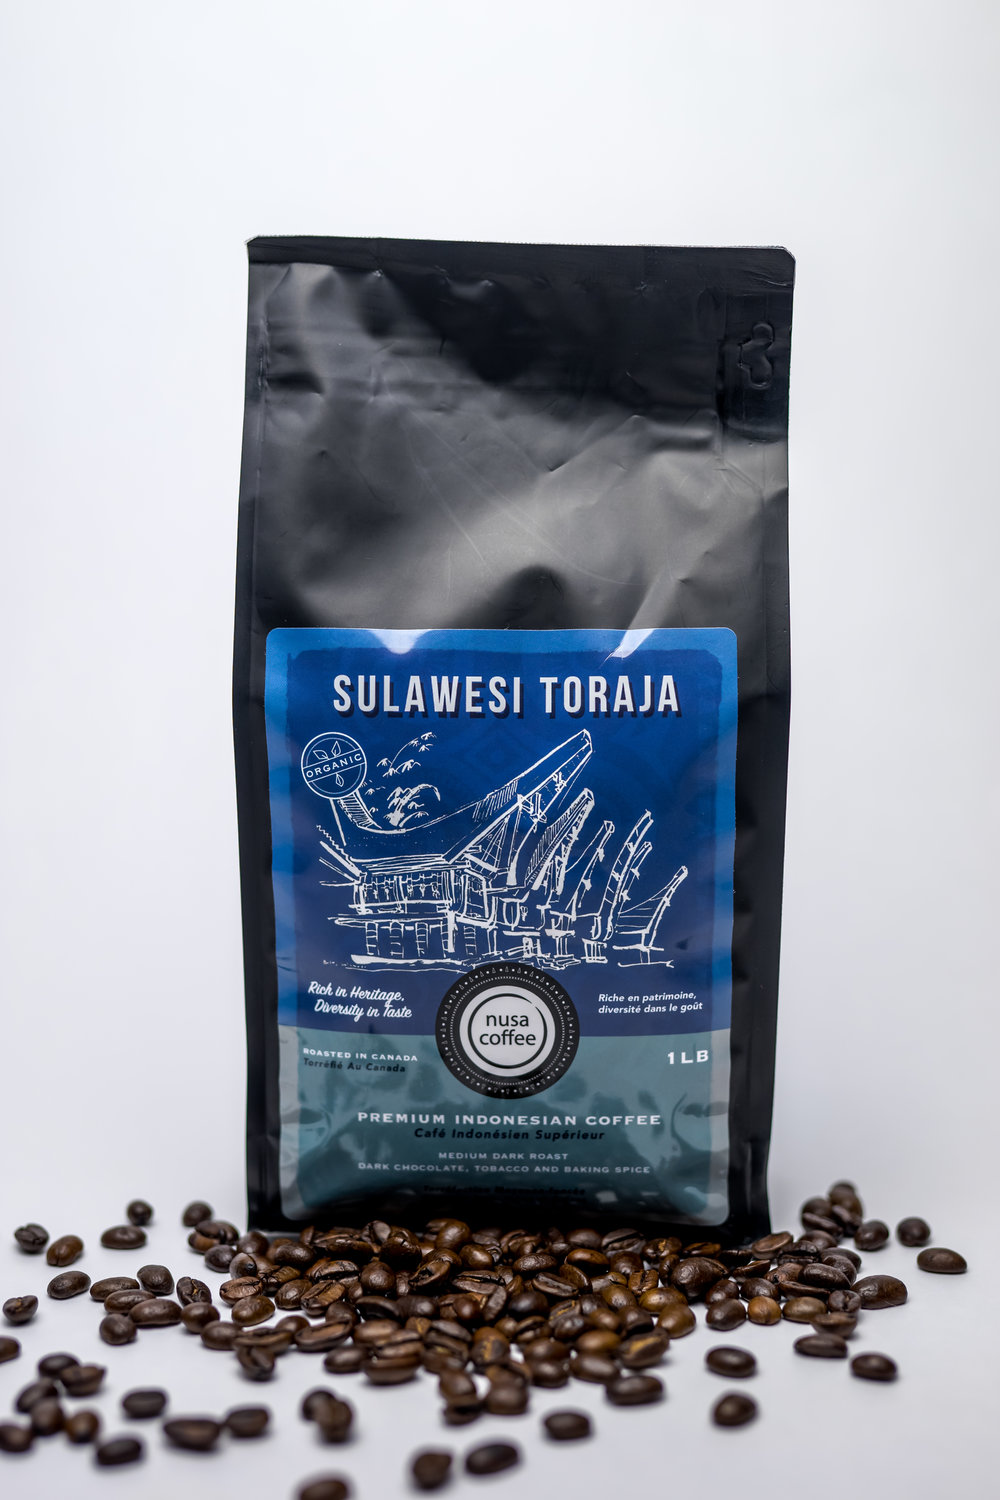 Sulawesi Toraja - Roasting Profile: Medium Dark - you taste most of roasted flavour (75%) with 25% of greens.Origin: Toraja Highlands is situated in Central Sulawesi.  Above 1400 metre elevation, the coffee plants are shade-grown with cacao, vanilla and other fruit trees were grown in between. The rich nutrients of volcanic soil also enhances the flavour of the beans. Earthy. Smooth. Balanced.  Processing Method: full wash - this is the widely accepted method for most coffee drinkers. It is generally smooth and balanced.